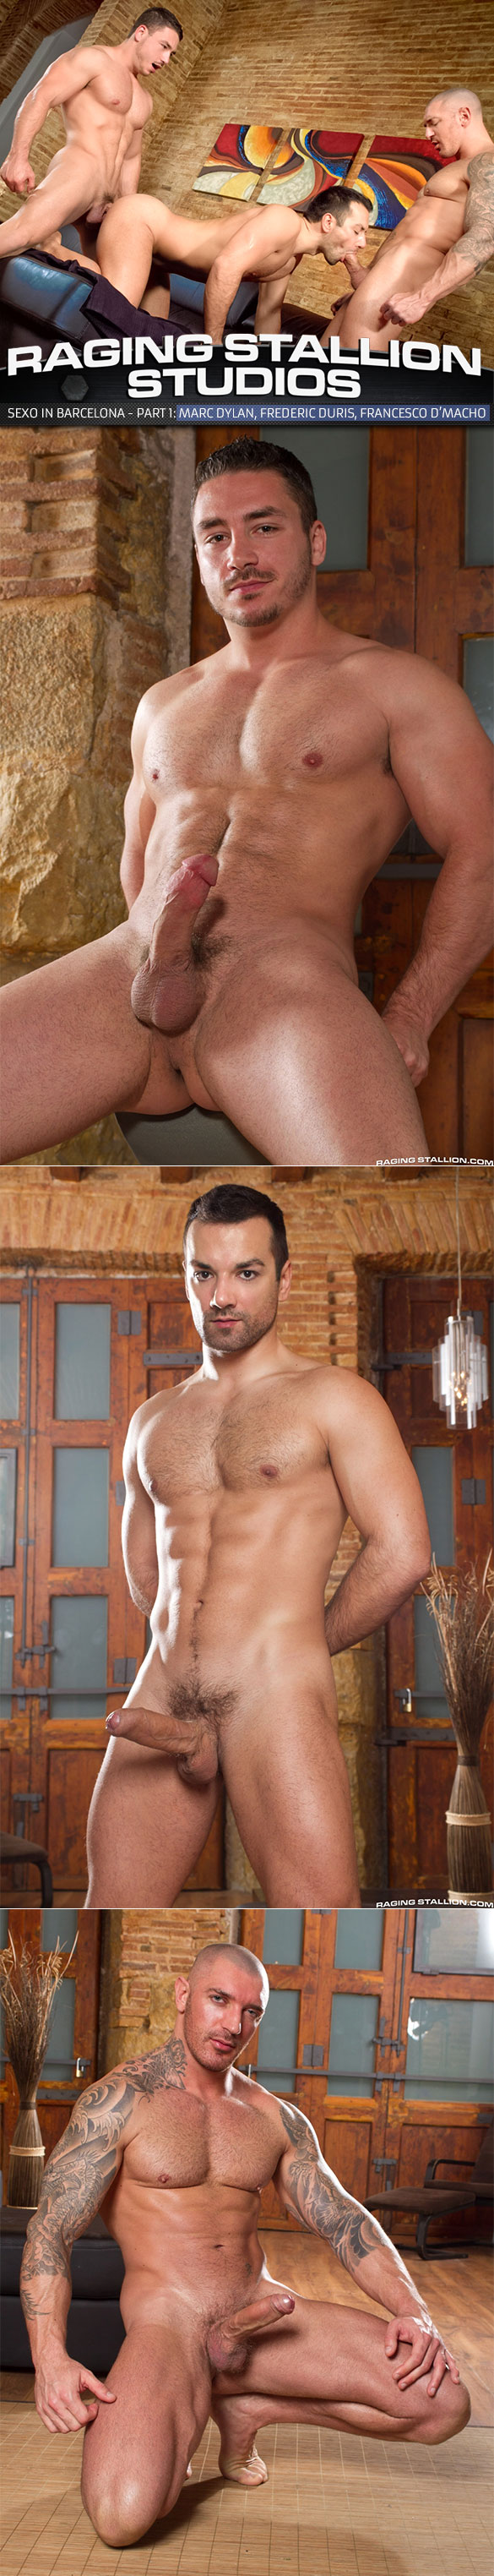 "Raging Stallion: Marc Dylan, Francesco D'Macho and Frederic Duris' hot threeway in ""Sexo in Barcelona, Part 1"""